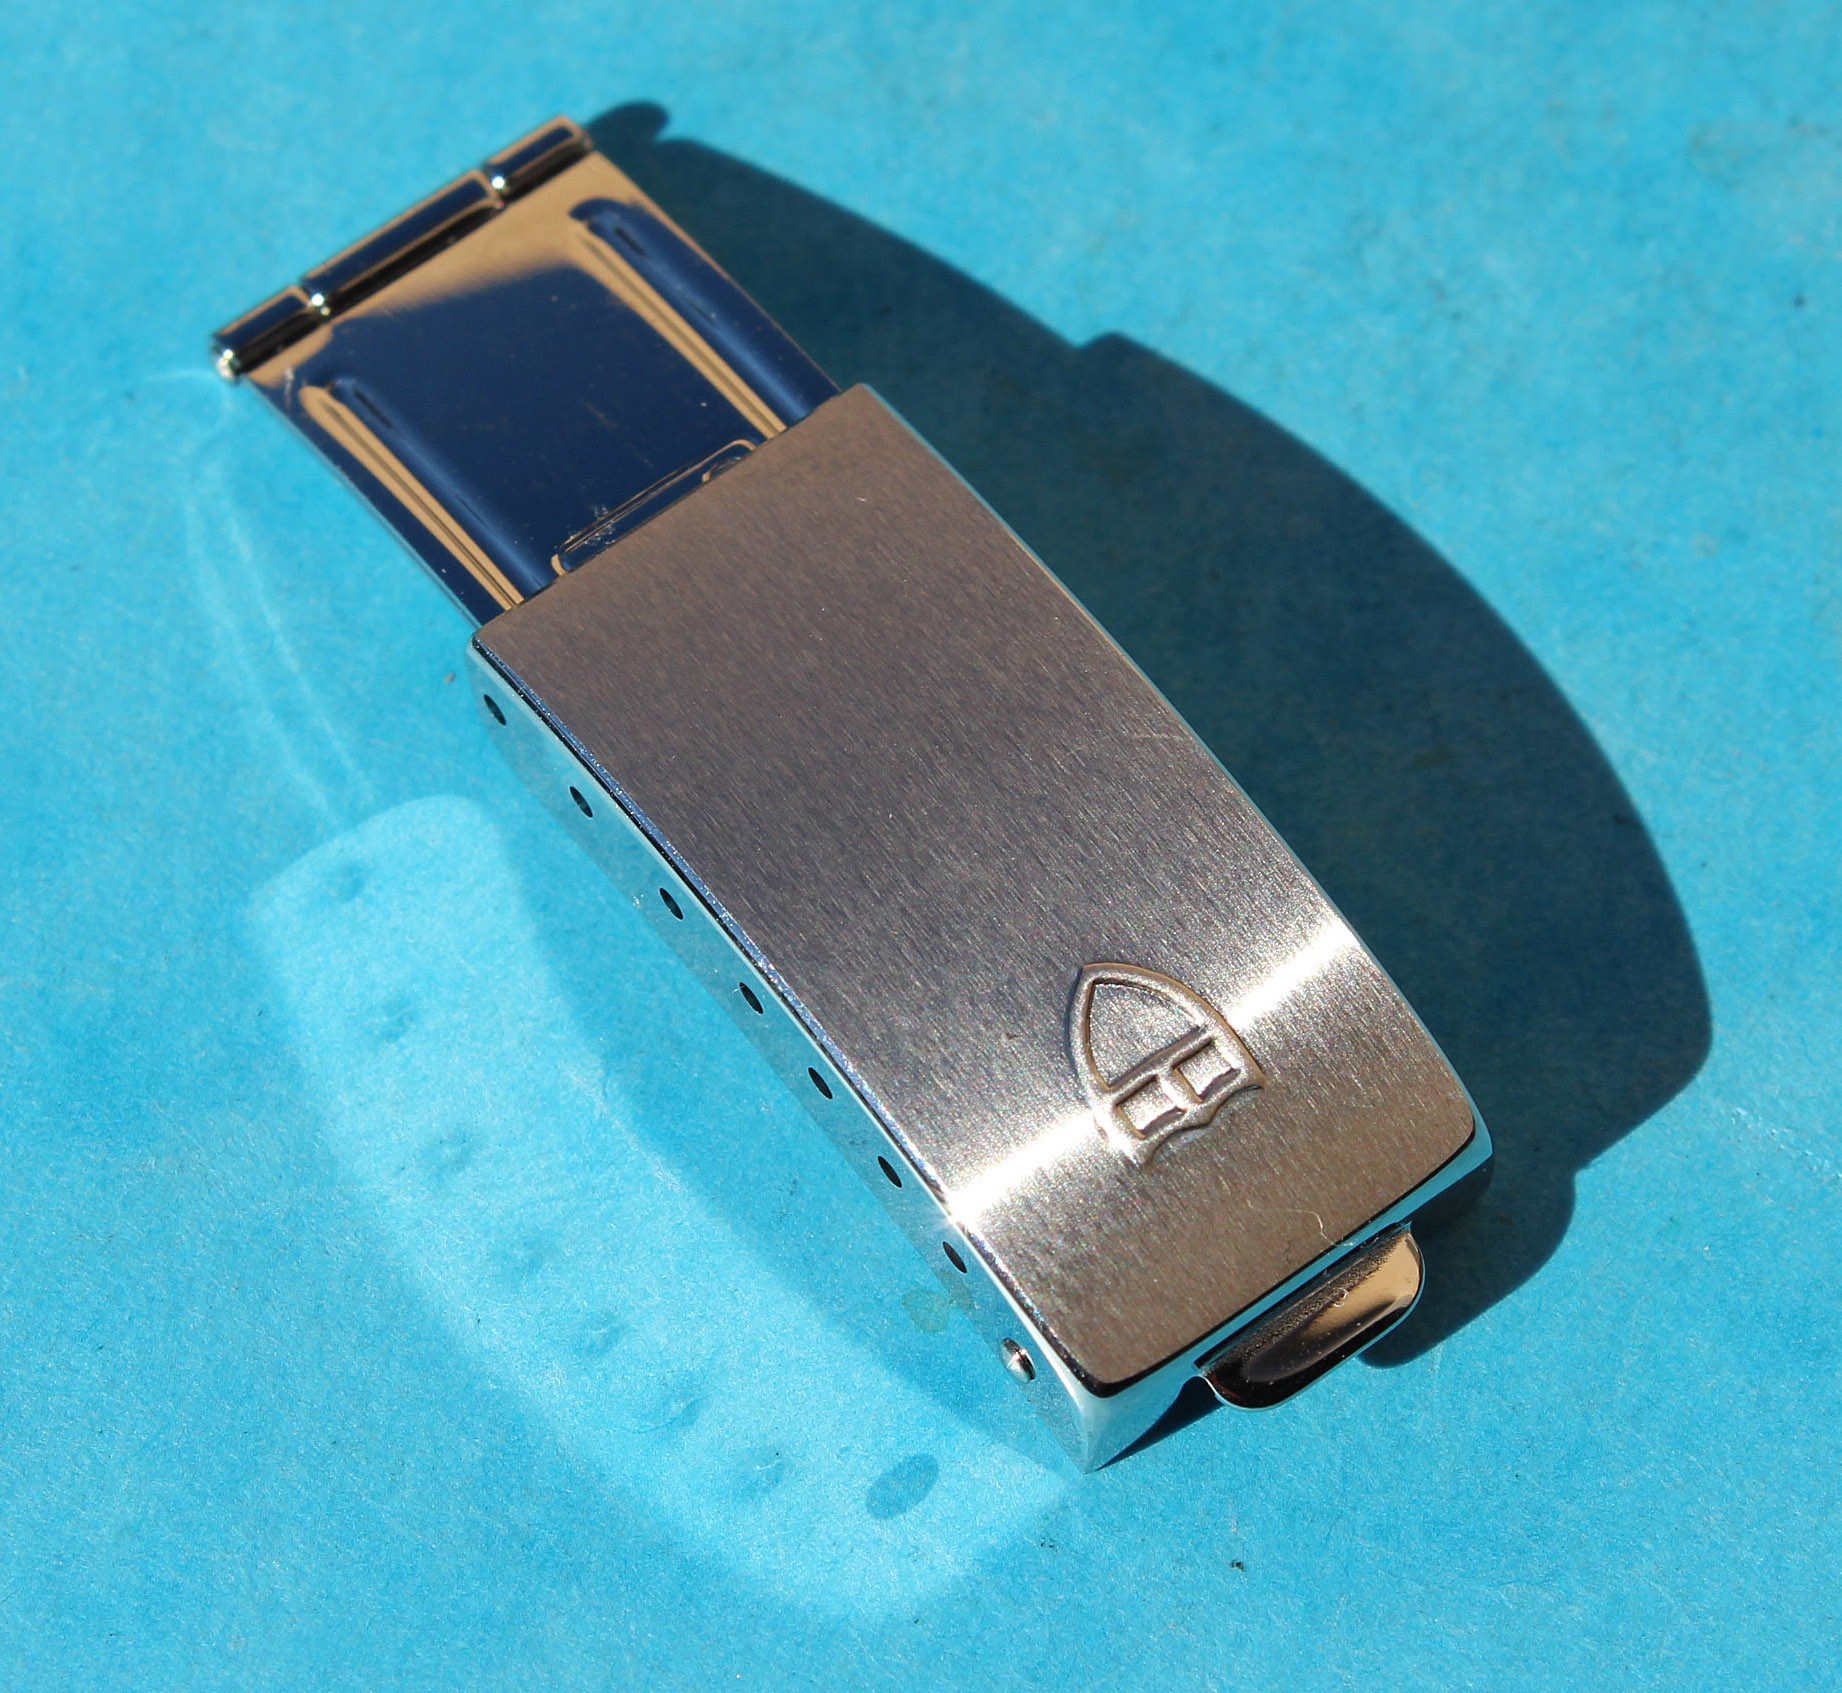 GENUINE TUDOR 7835 FOLDED DEPLOYANT CLASP WATCHES BANDS NEW FOR 19mm BRACELET FOLDED LINK ROLEX